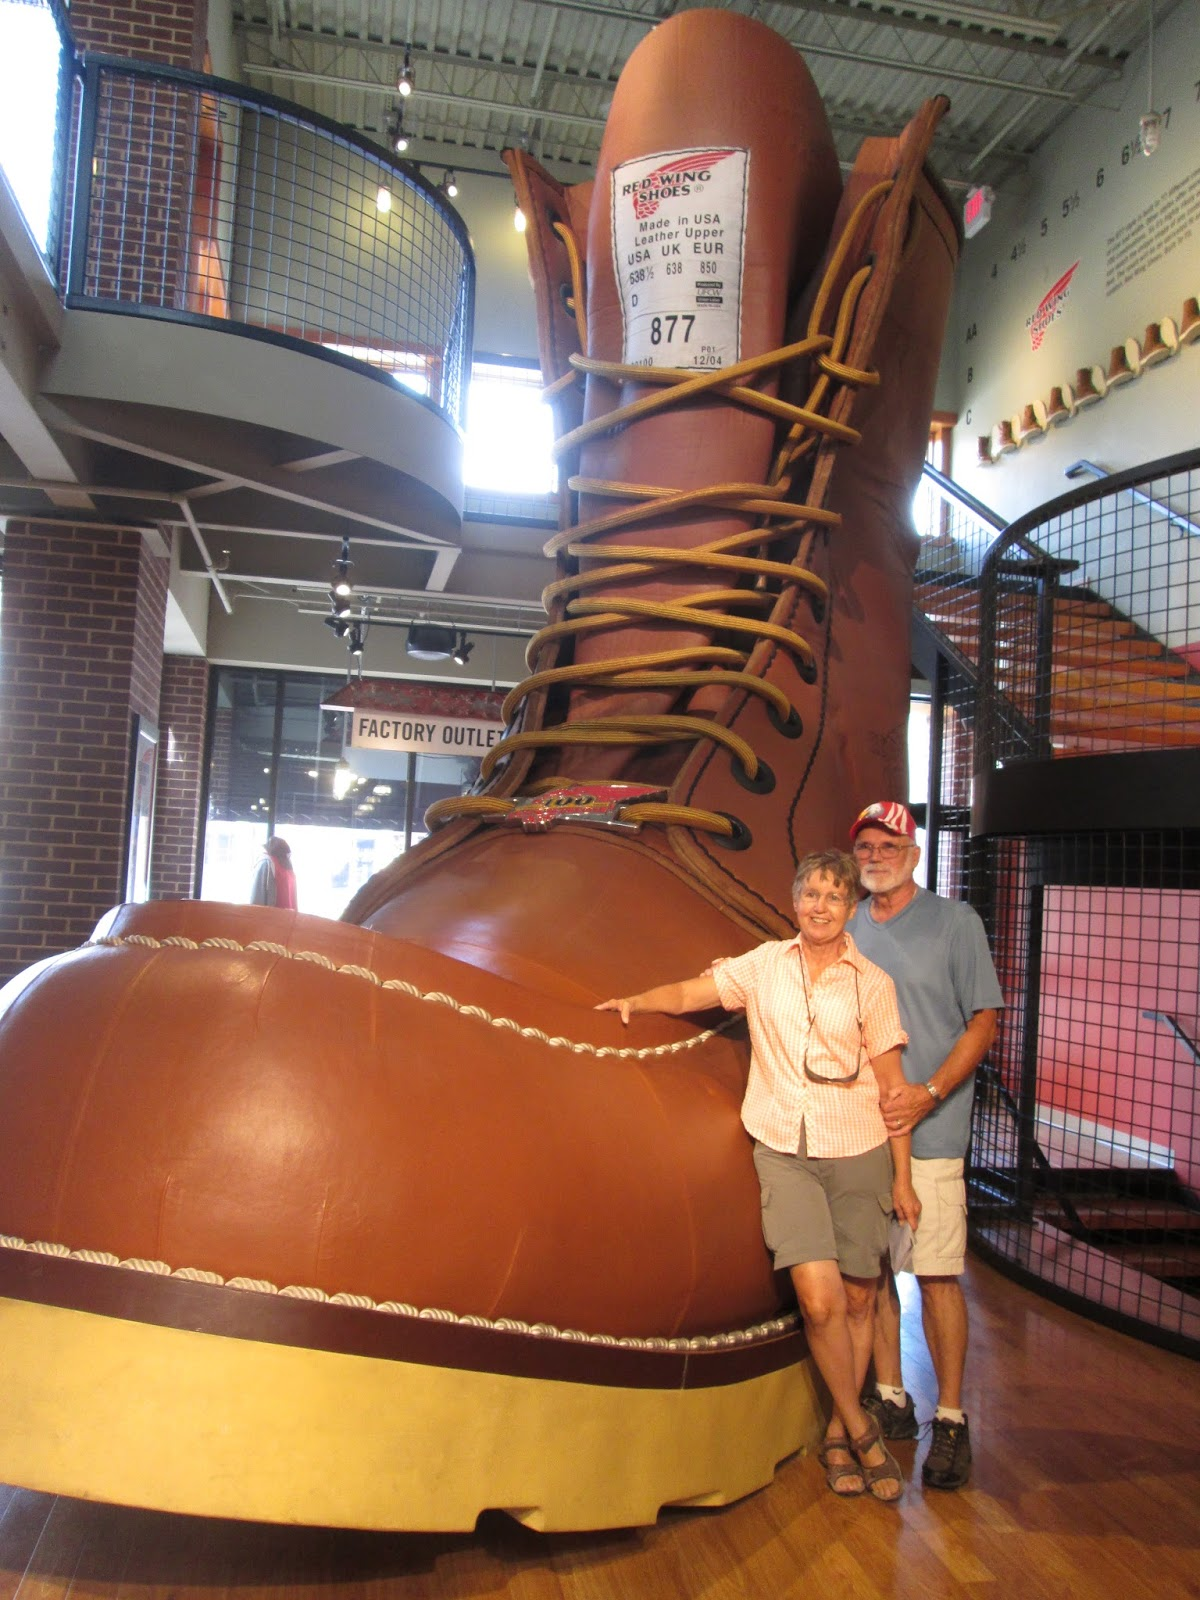 Bill and Jan RVing the USA: The Biggest Boot in the World